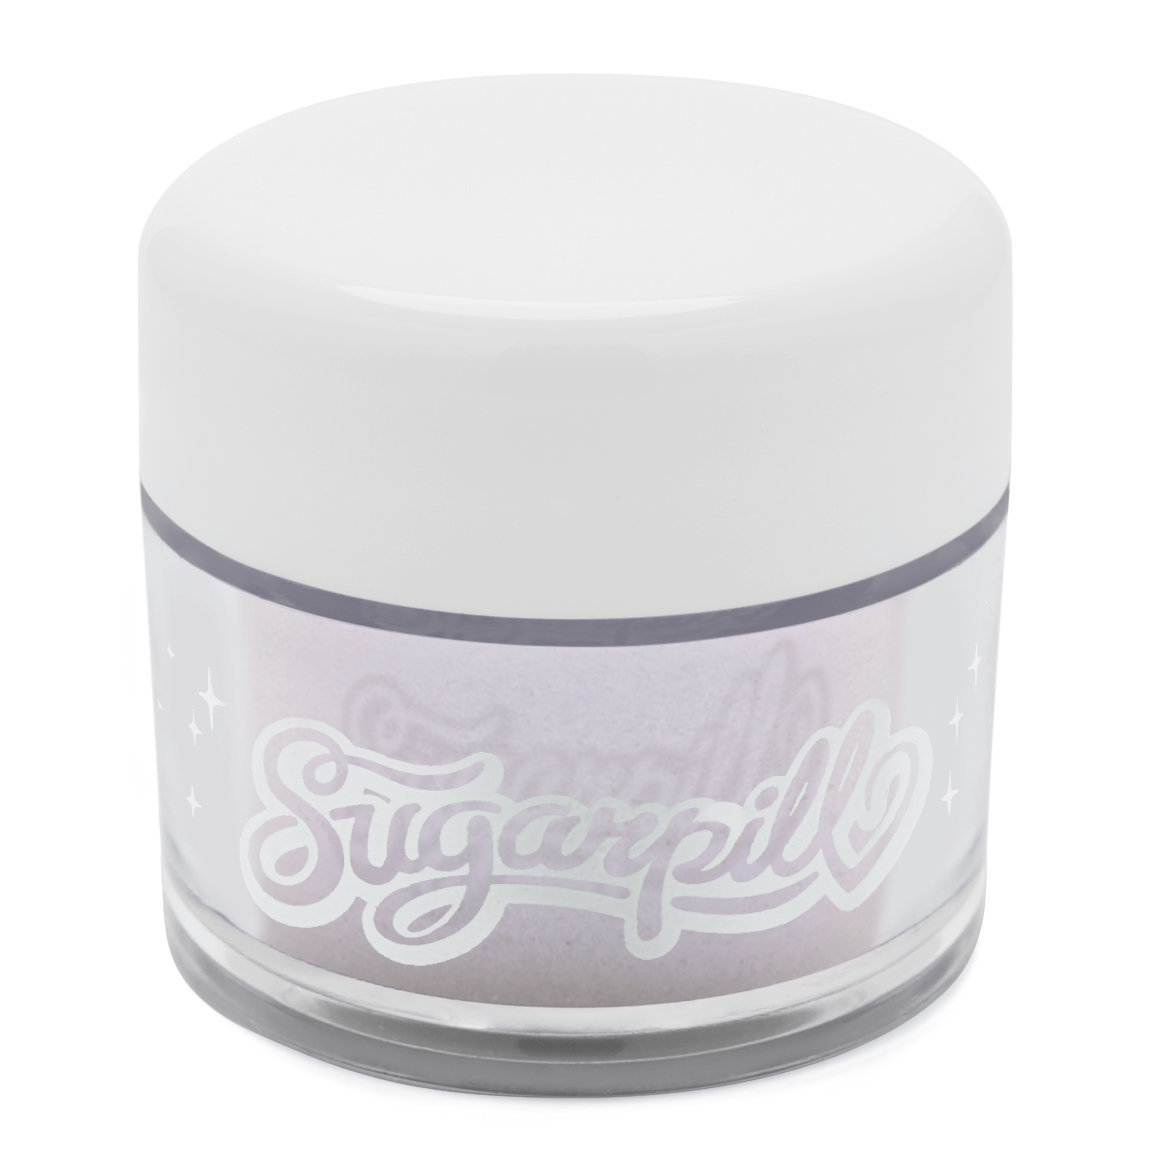 Sugarpill Cosmetics Loose Eyeshadow Ghosted alternative view 1.